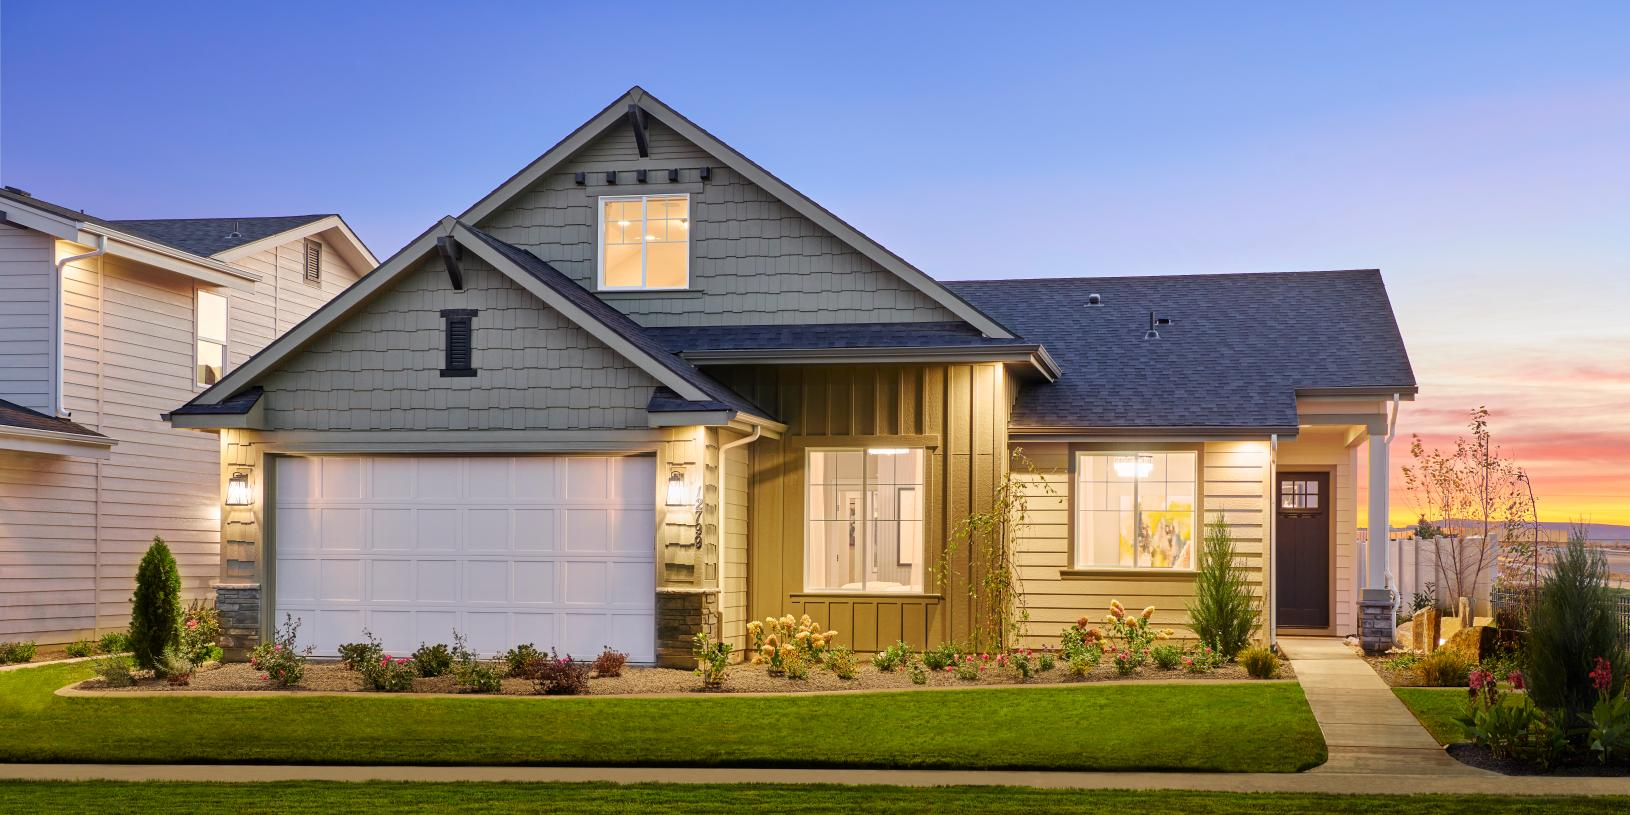 Choose from hundreds of high-end exterior options